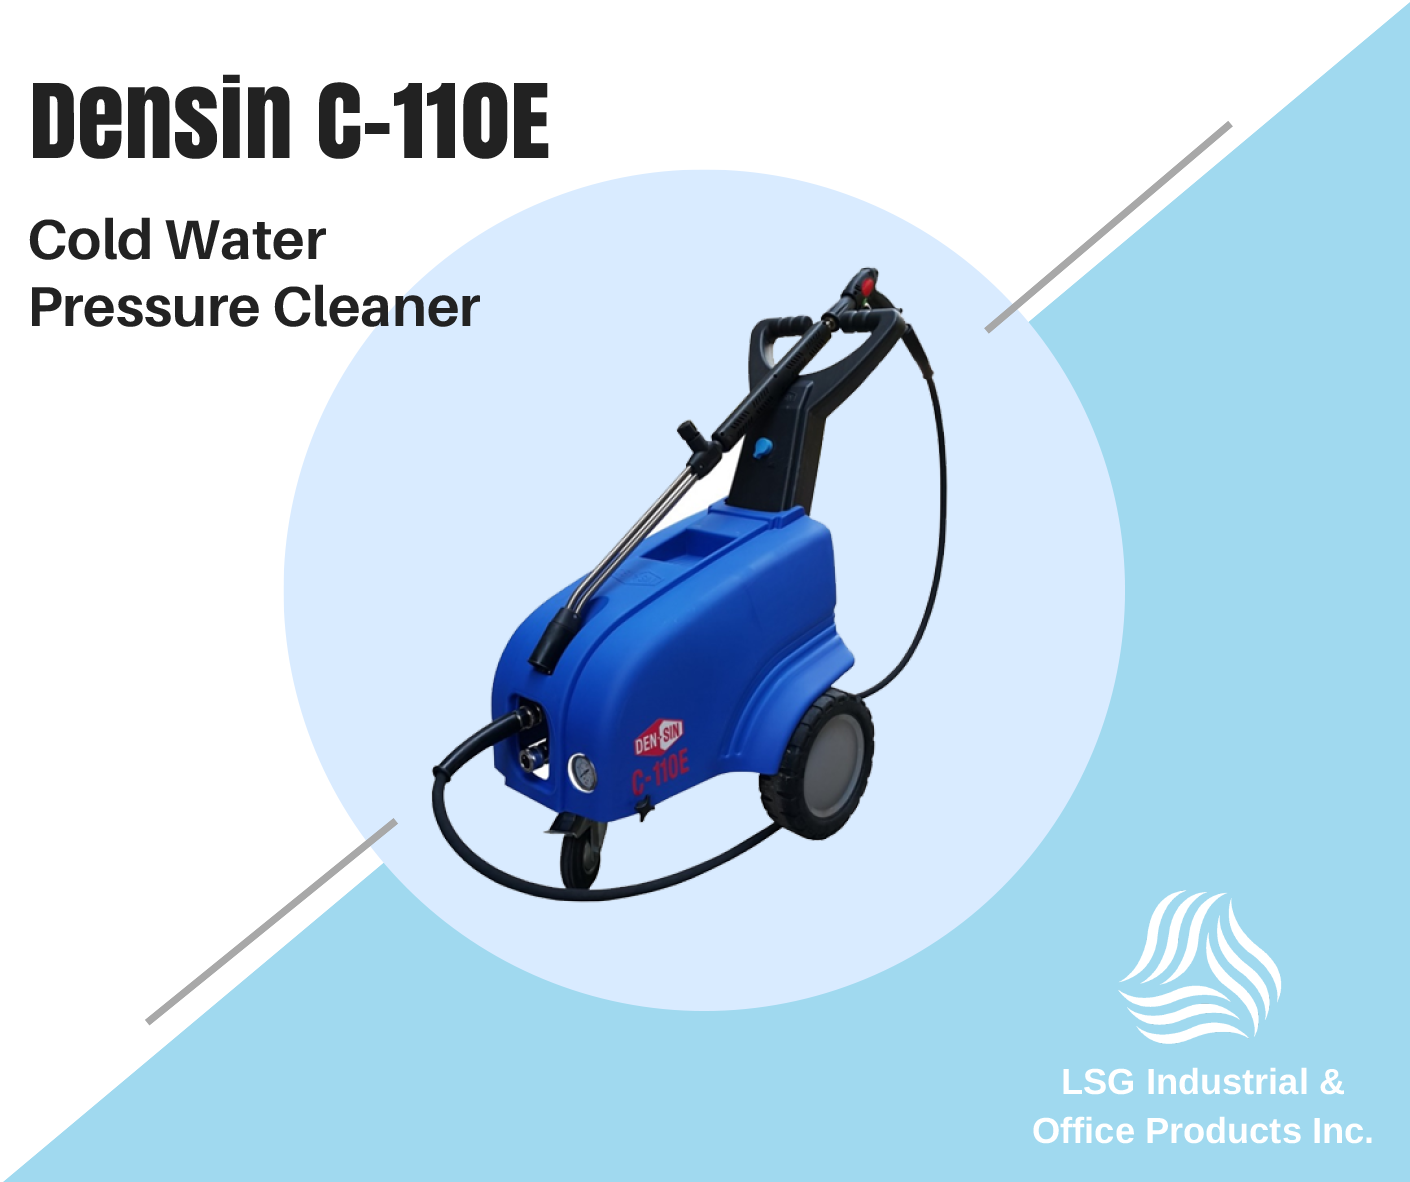 Densin C110E Cold Pressure Cleaner is a heavyduty